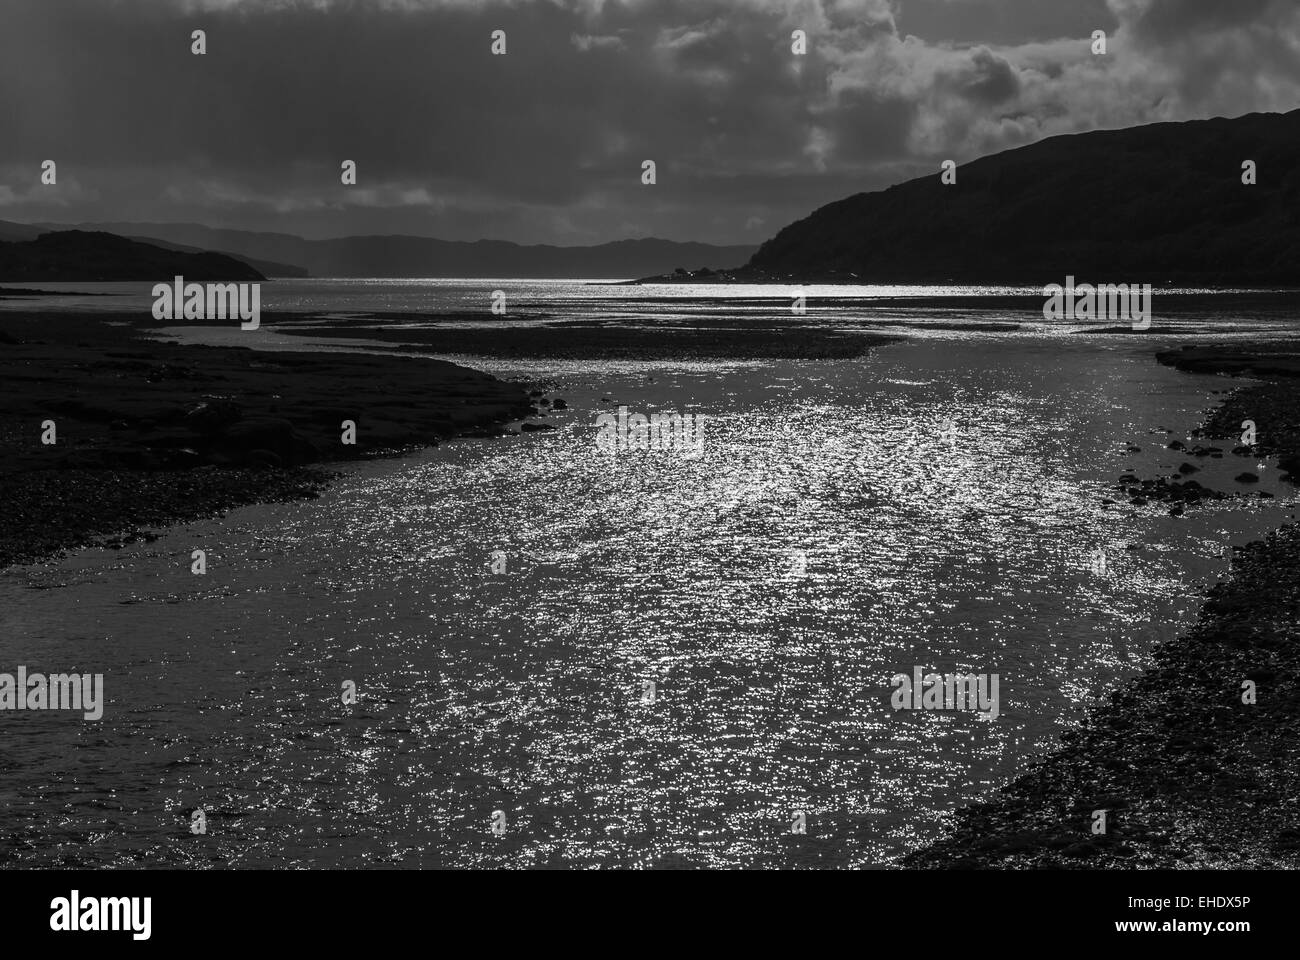 A black and white image of Loch Slapin on the Isle of Skye inner hebrides, Scotland - Stock Image